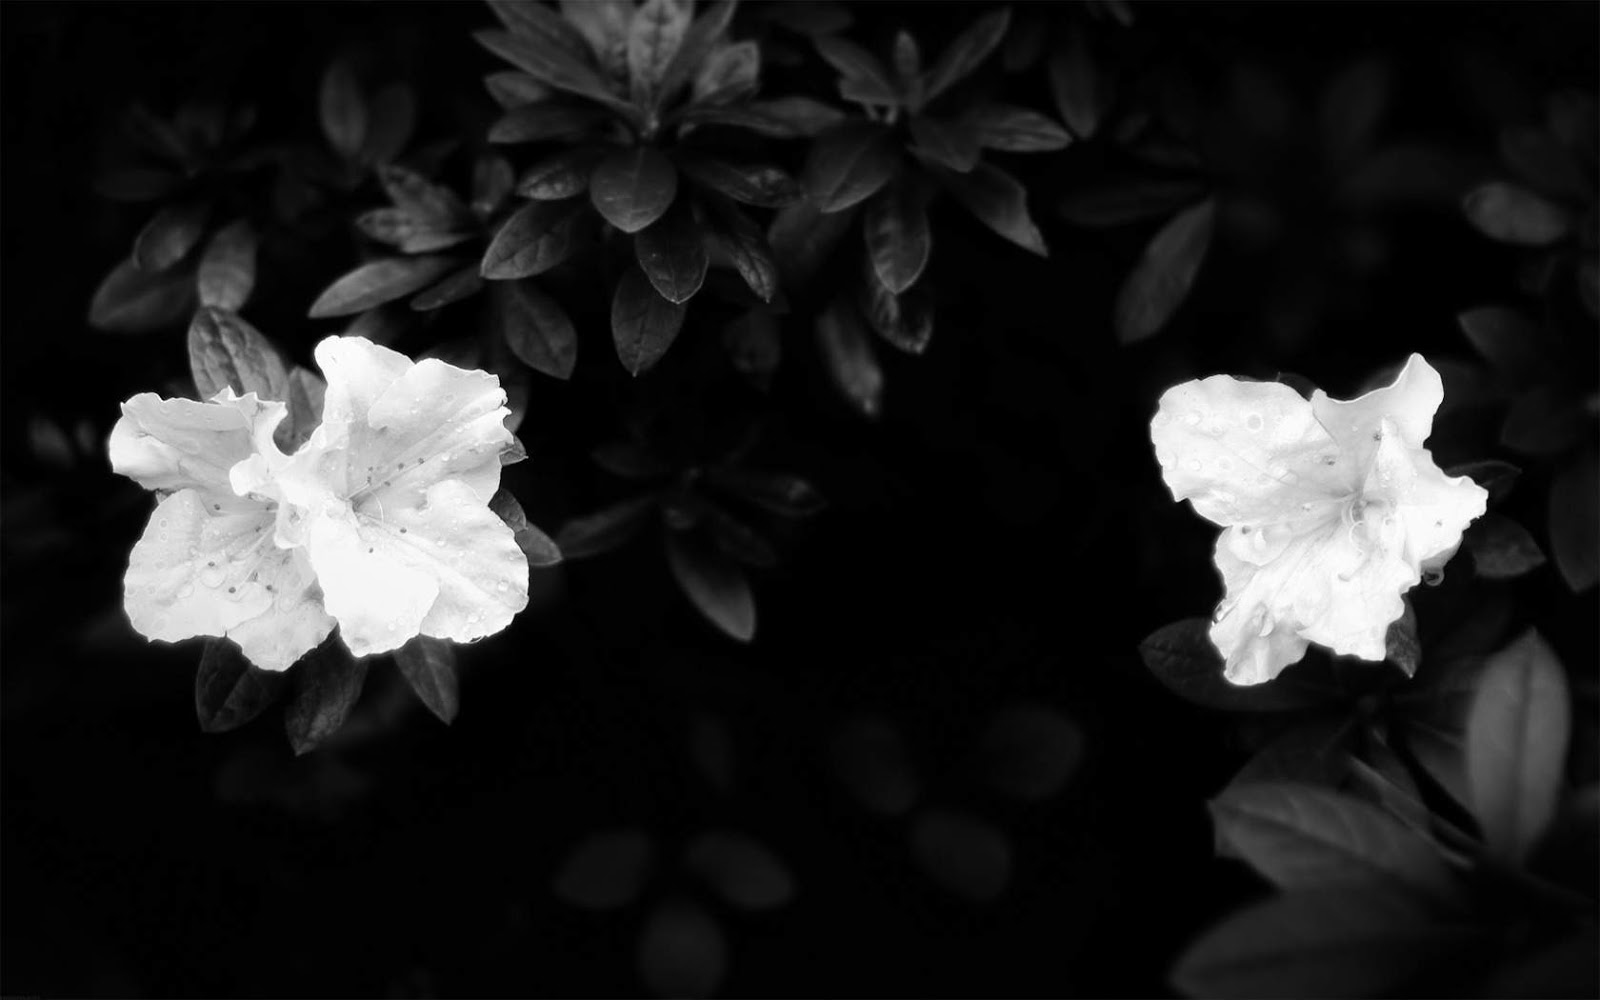 http://4.bp.blogspot.com/-BIfBRmmLpqE/UNoOh5faFDI/AAAAAAAAB_0/XkCsNUjaMfM/s1600/White+Flowers+On+Black+Background+Wallpaper+HD.jpg